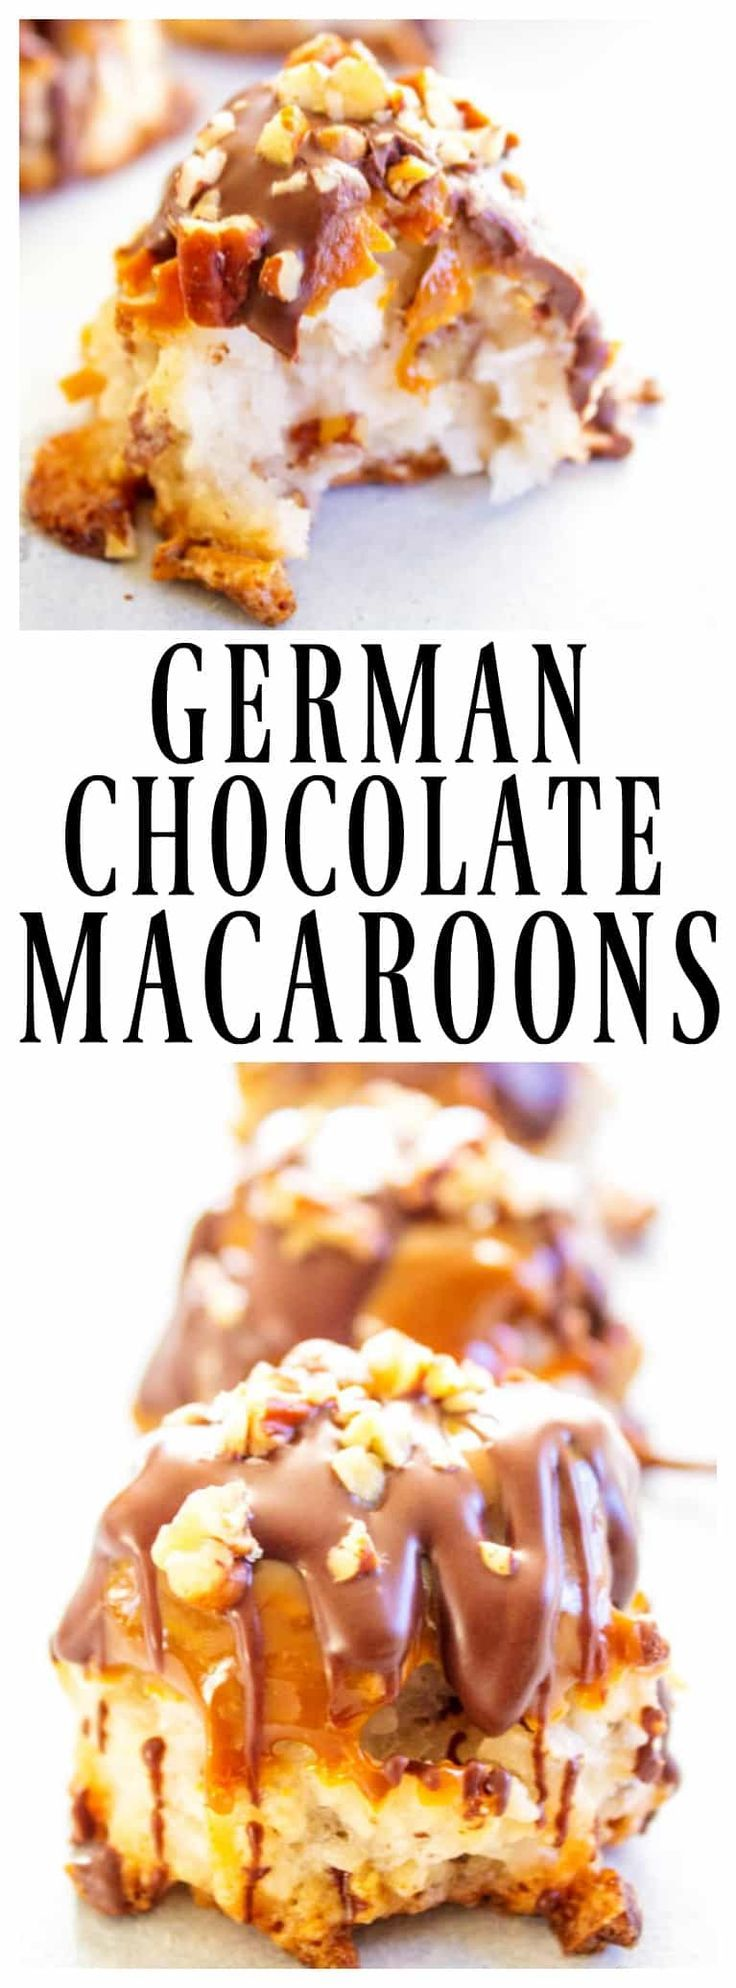 GERMAN CHOCOLATE MACAROONS - Loaded with coconut & pecans, dipped in caramel & drizzled with chocolates this drool worthy cookies is a holidays must have.